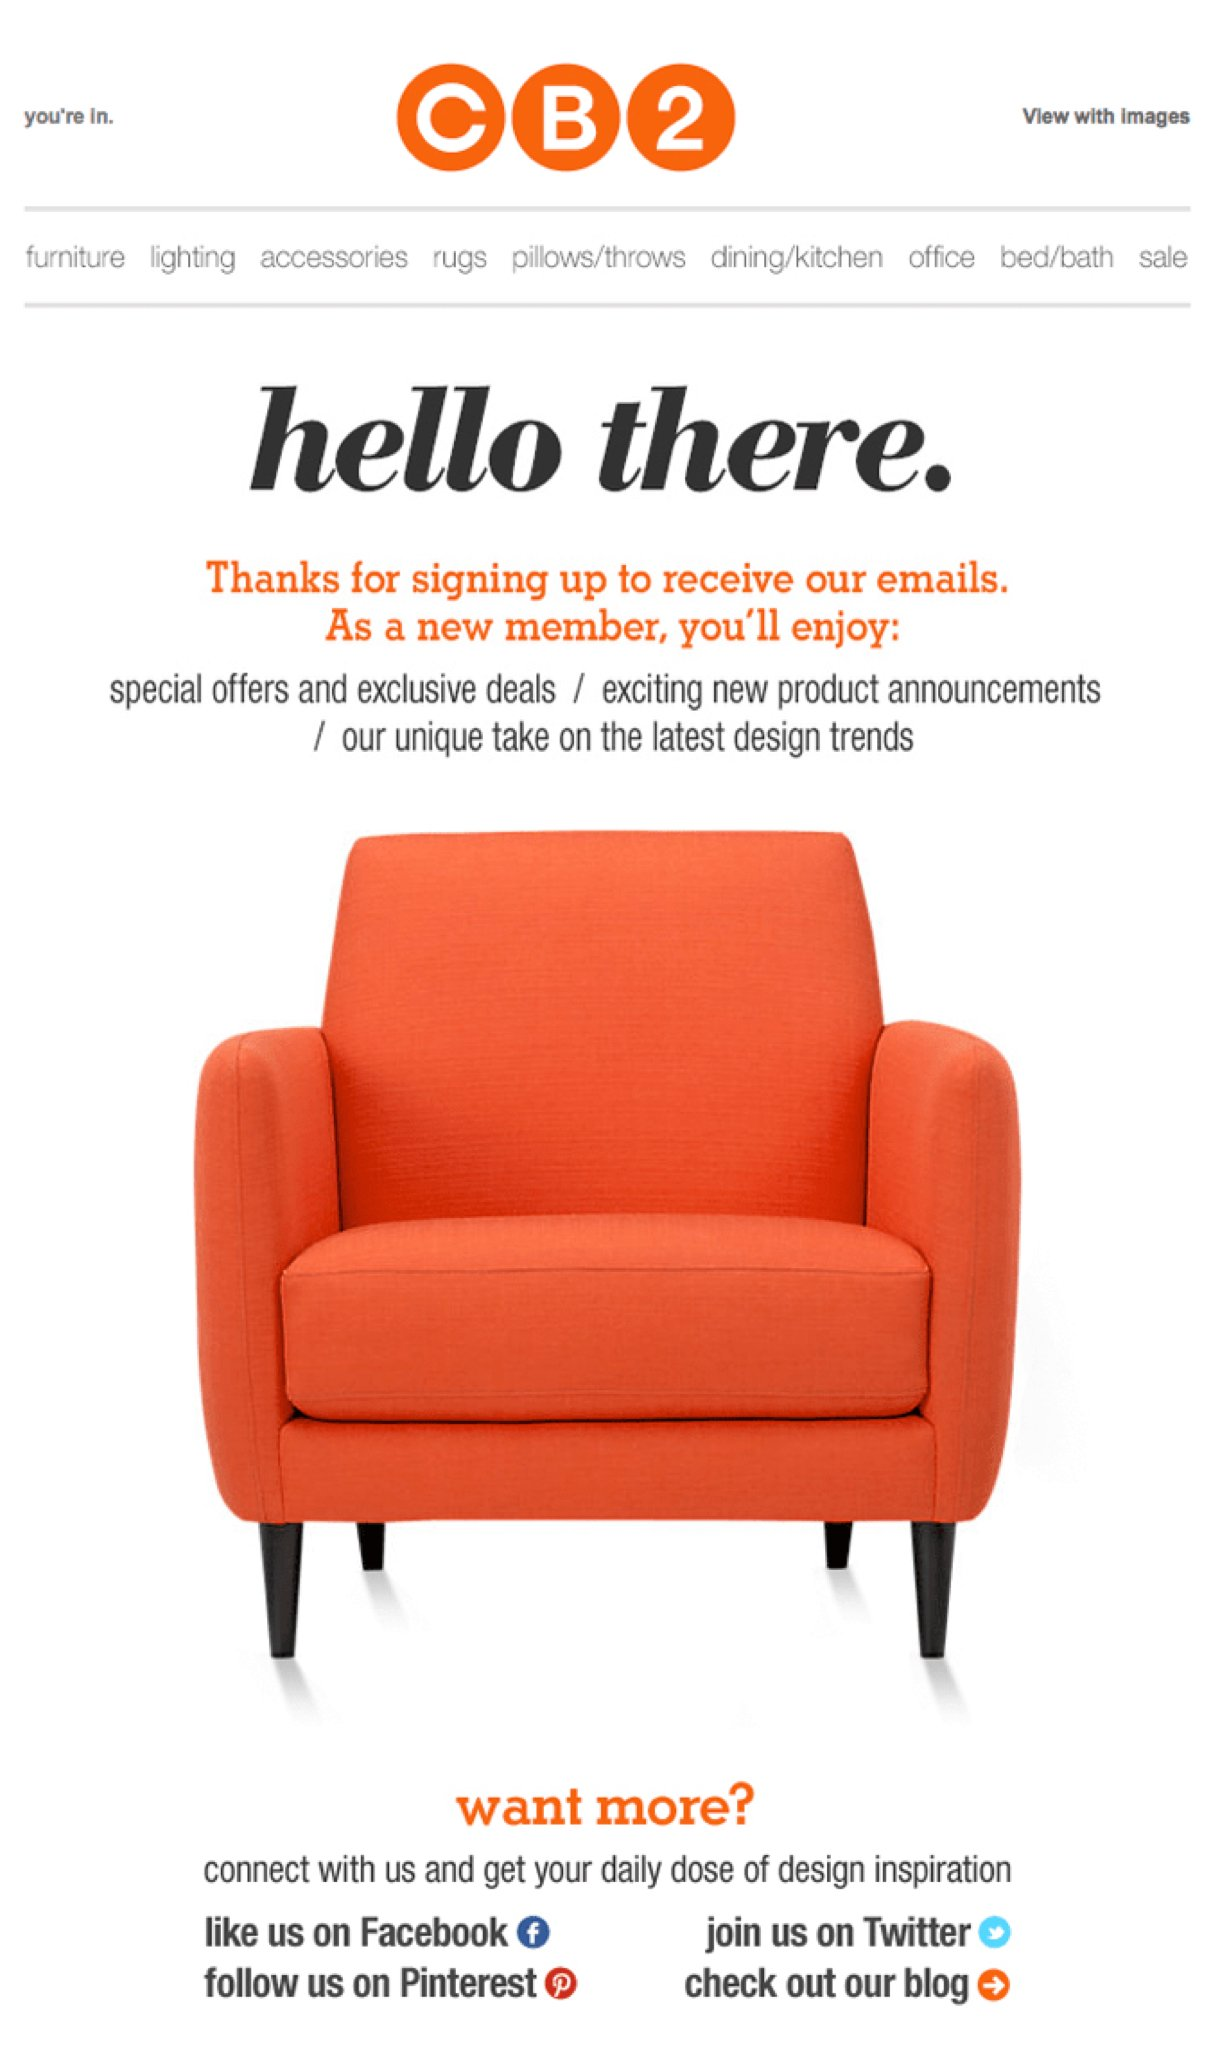 CB2 welcome email example orange chair on white background